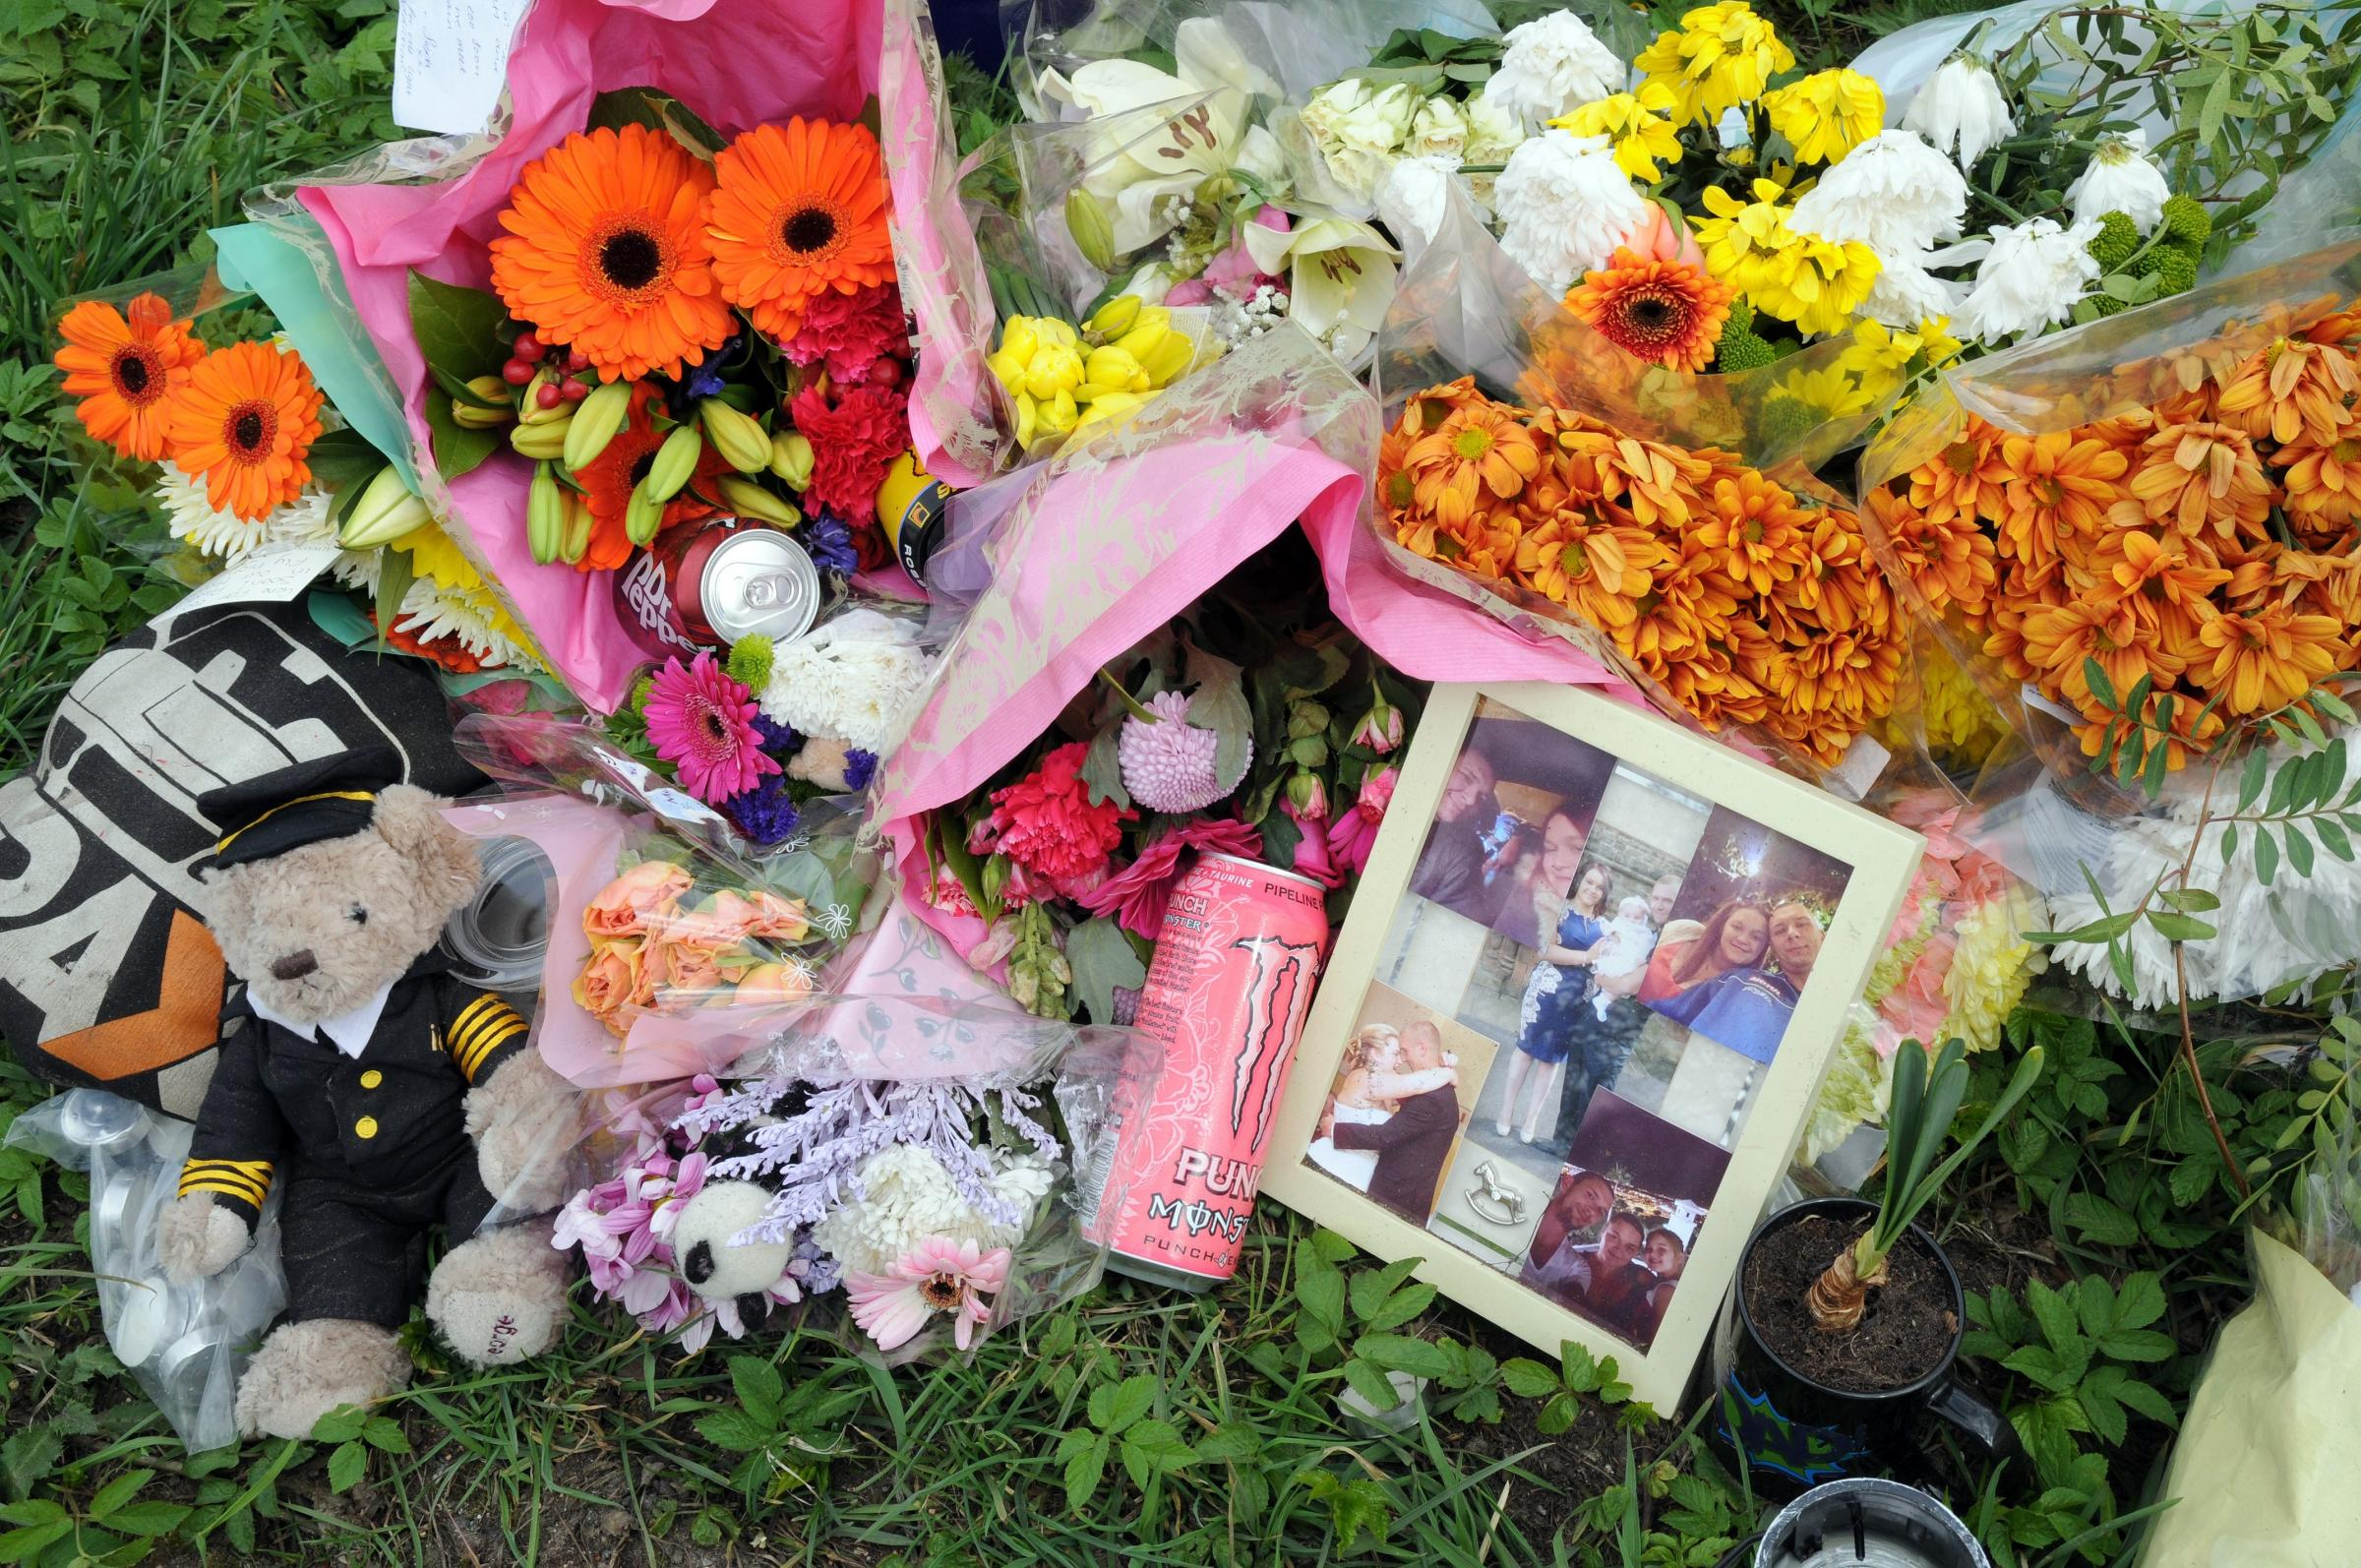 Floral tributes left at the scene of last month's fatal crash